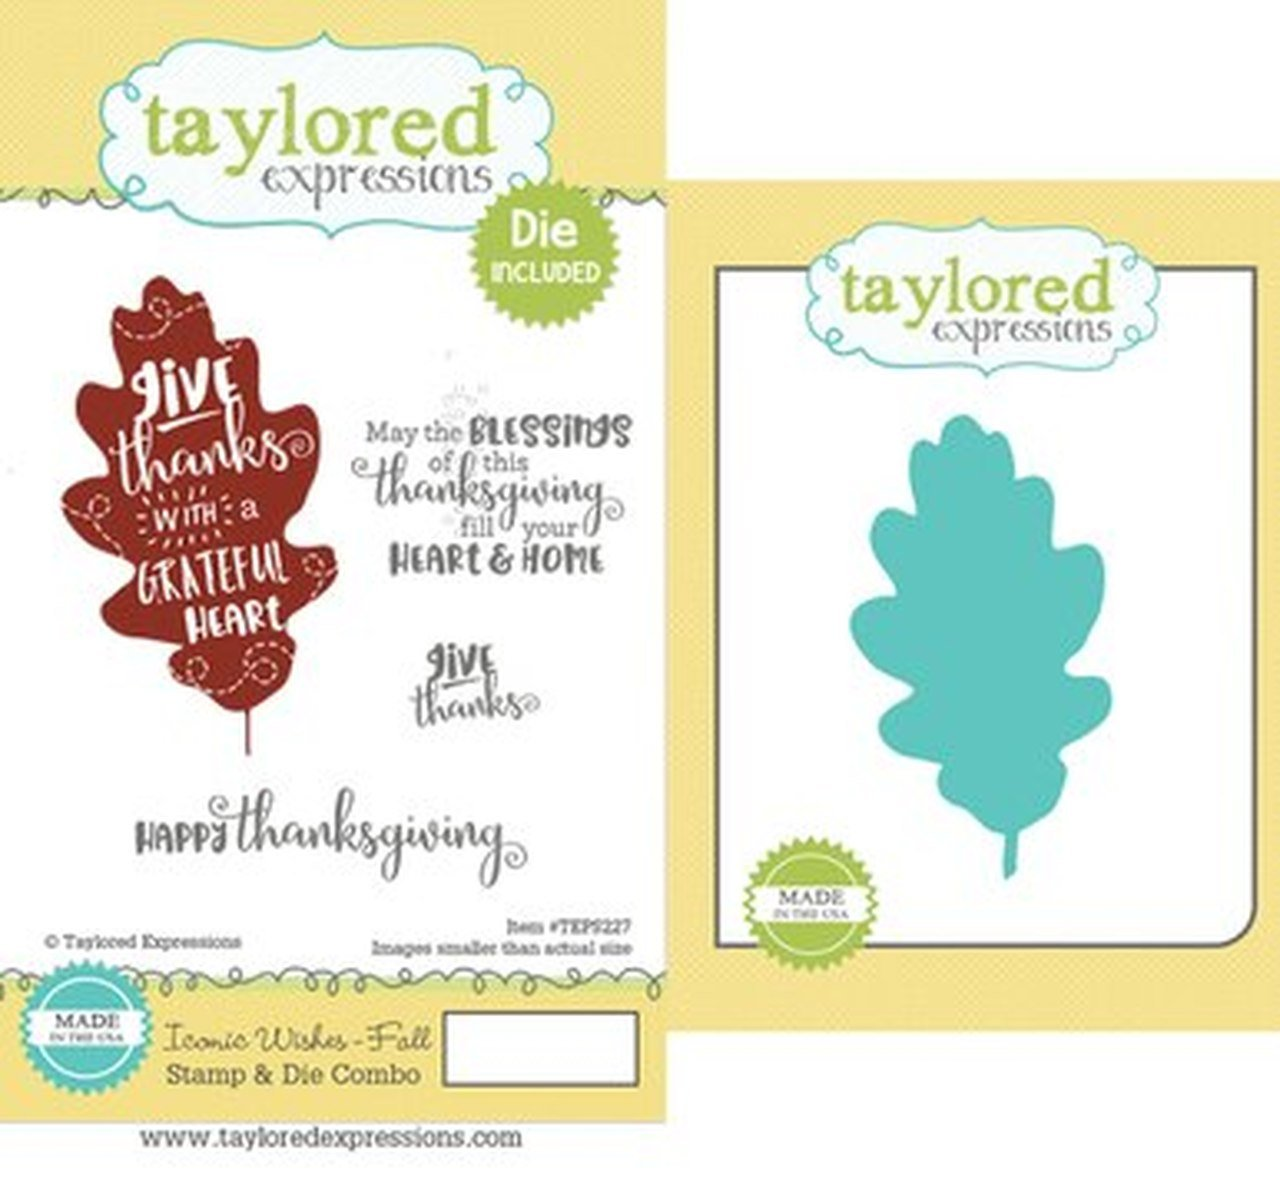 Taylored Expressions - Iconic Wishes, Fall Stamp & Die Set